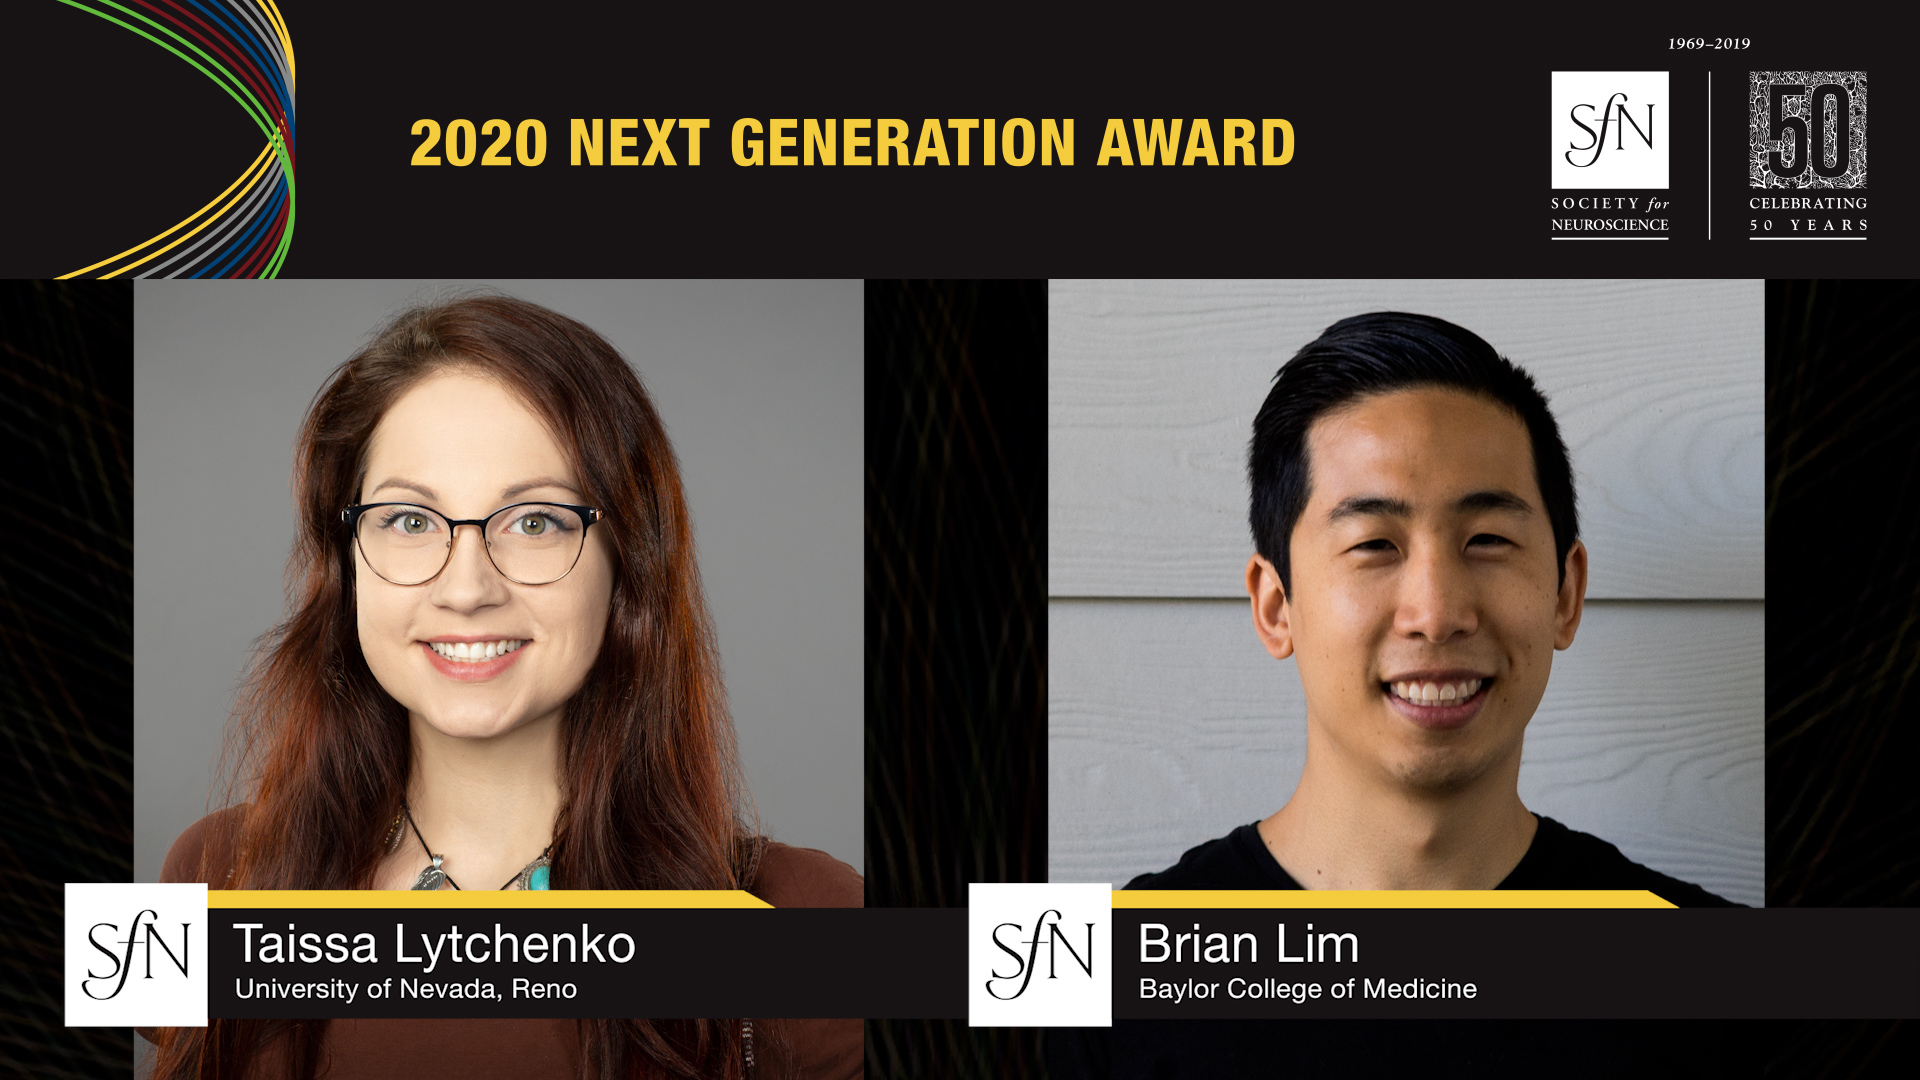 2020 Next Generation Award Winners graphic, images of Tassia Lytchenko University of Nevada, Reno and Brian Lim Baylor College of Medicine